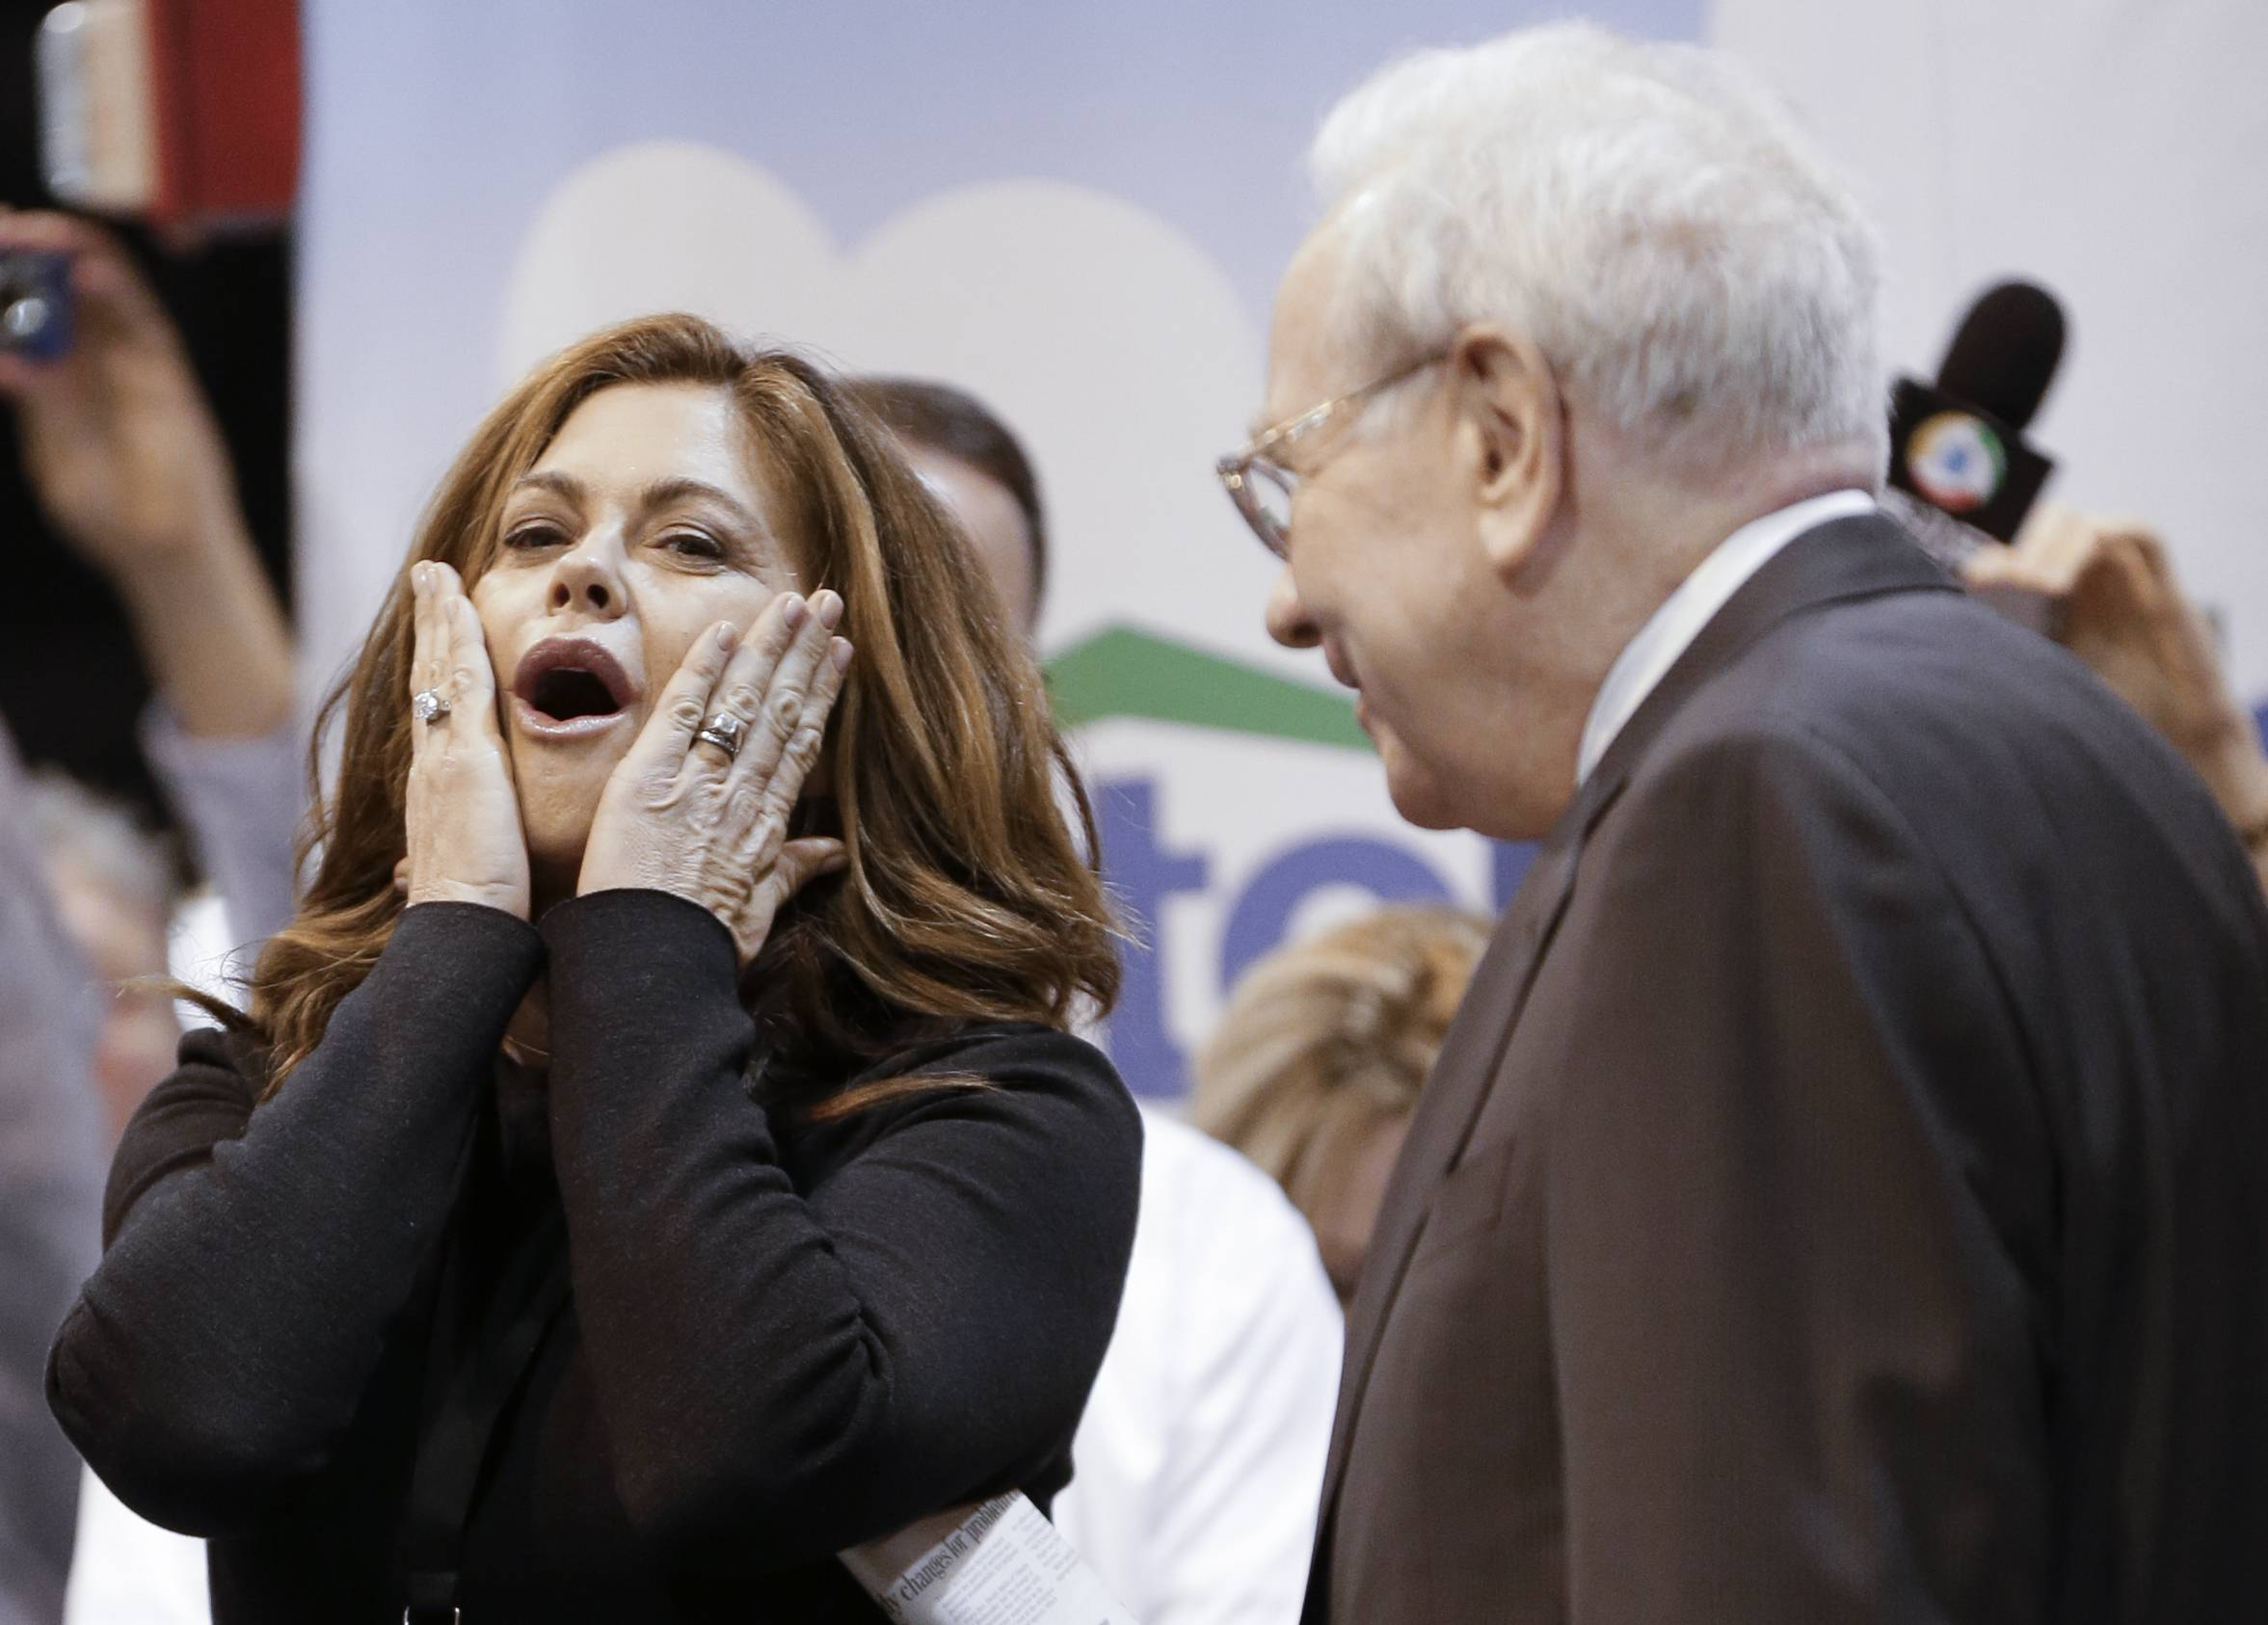 Berkshire Hathaway Chairman and CEO Warren Buffett, right, watches former super model and current business woman Kathy Ireland react Saturday after making a bad throw in the newspaper throwing competition prior to the annual shareholders meeting.